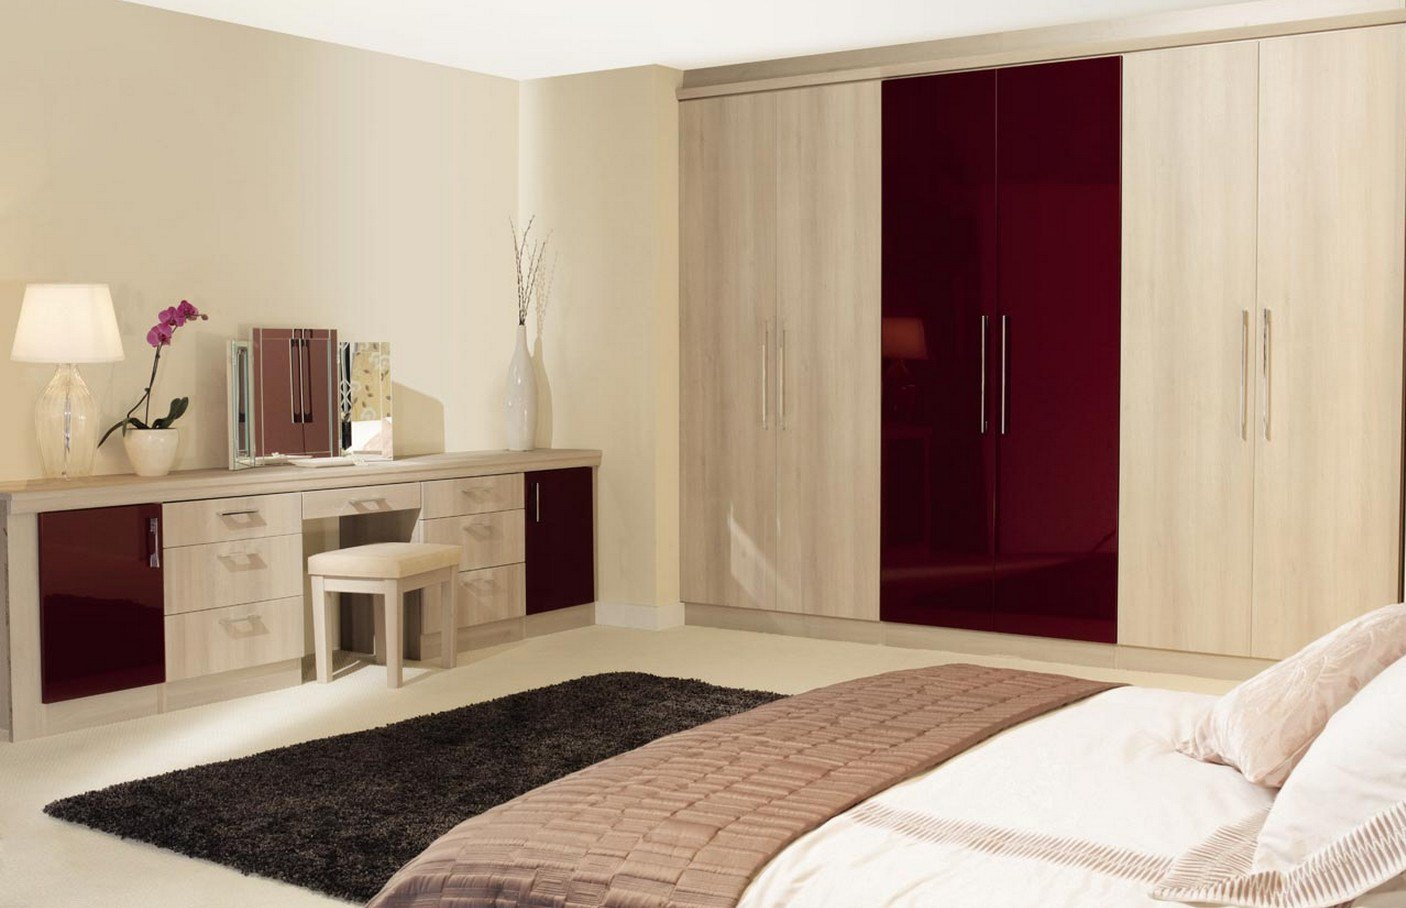 Best 35 Images Of Wardrobe Designs For Bedrooms You Mean D With Pictures